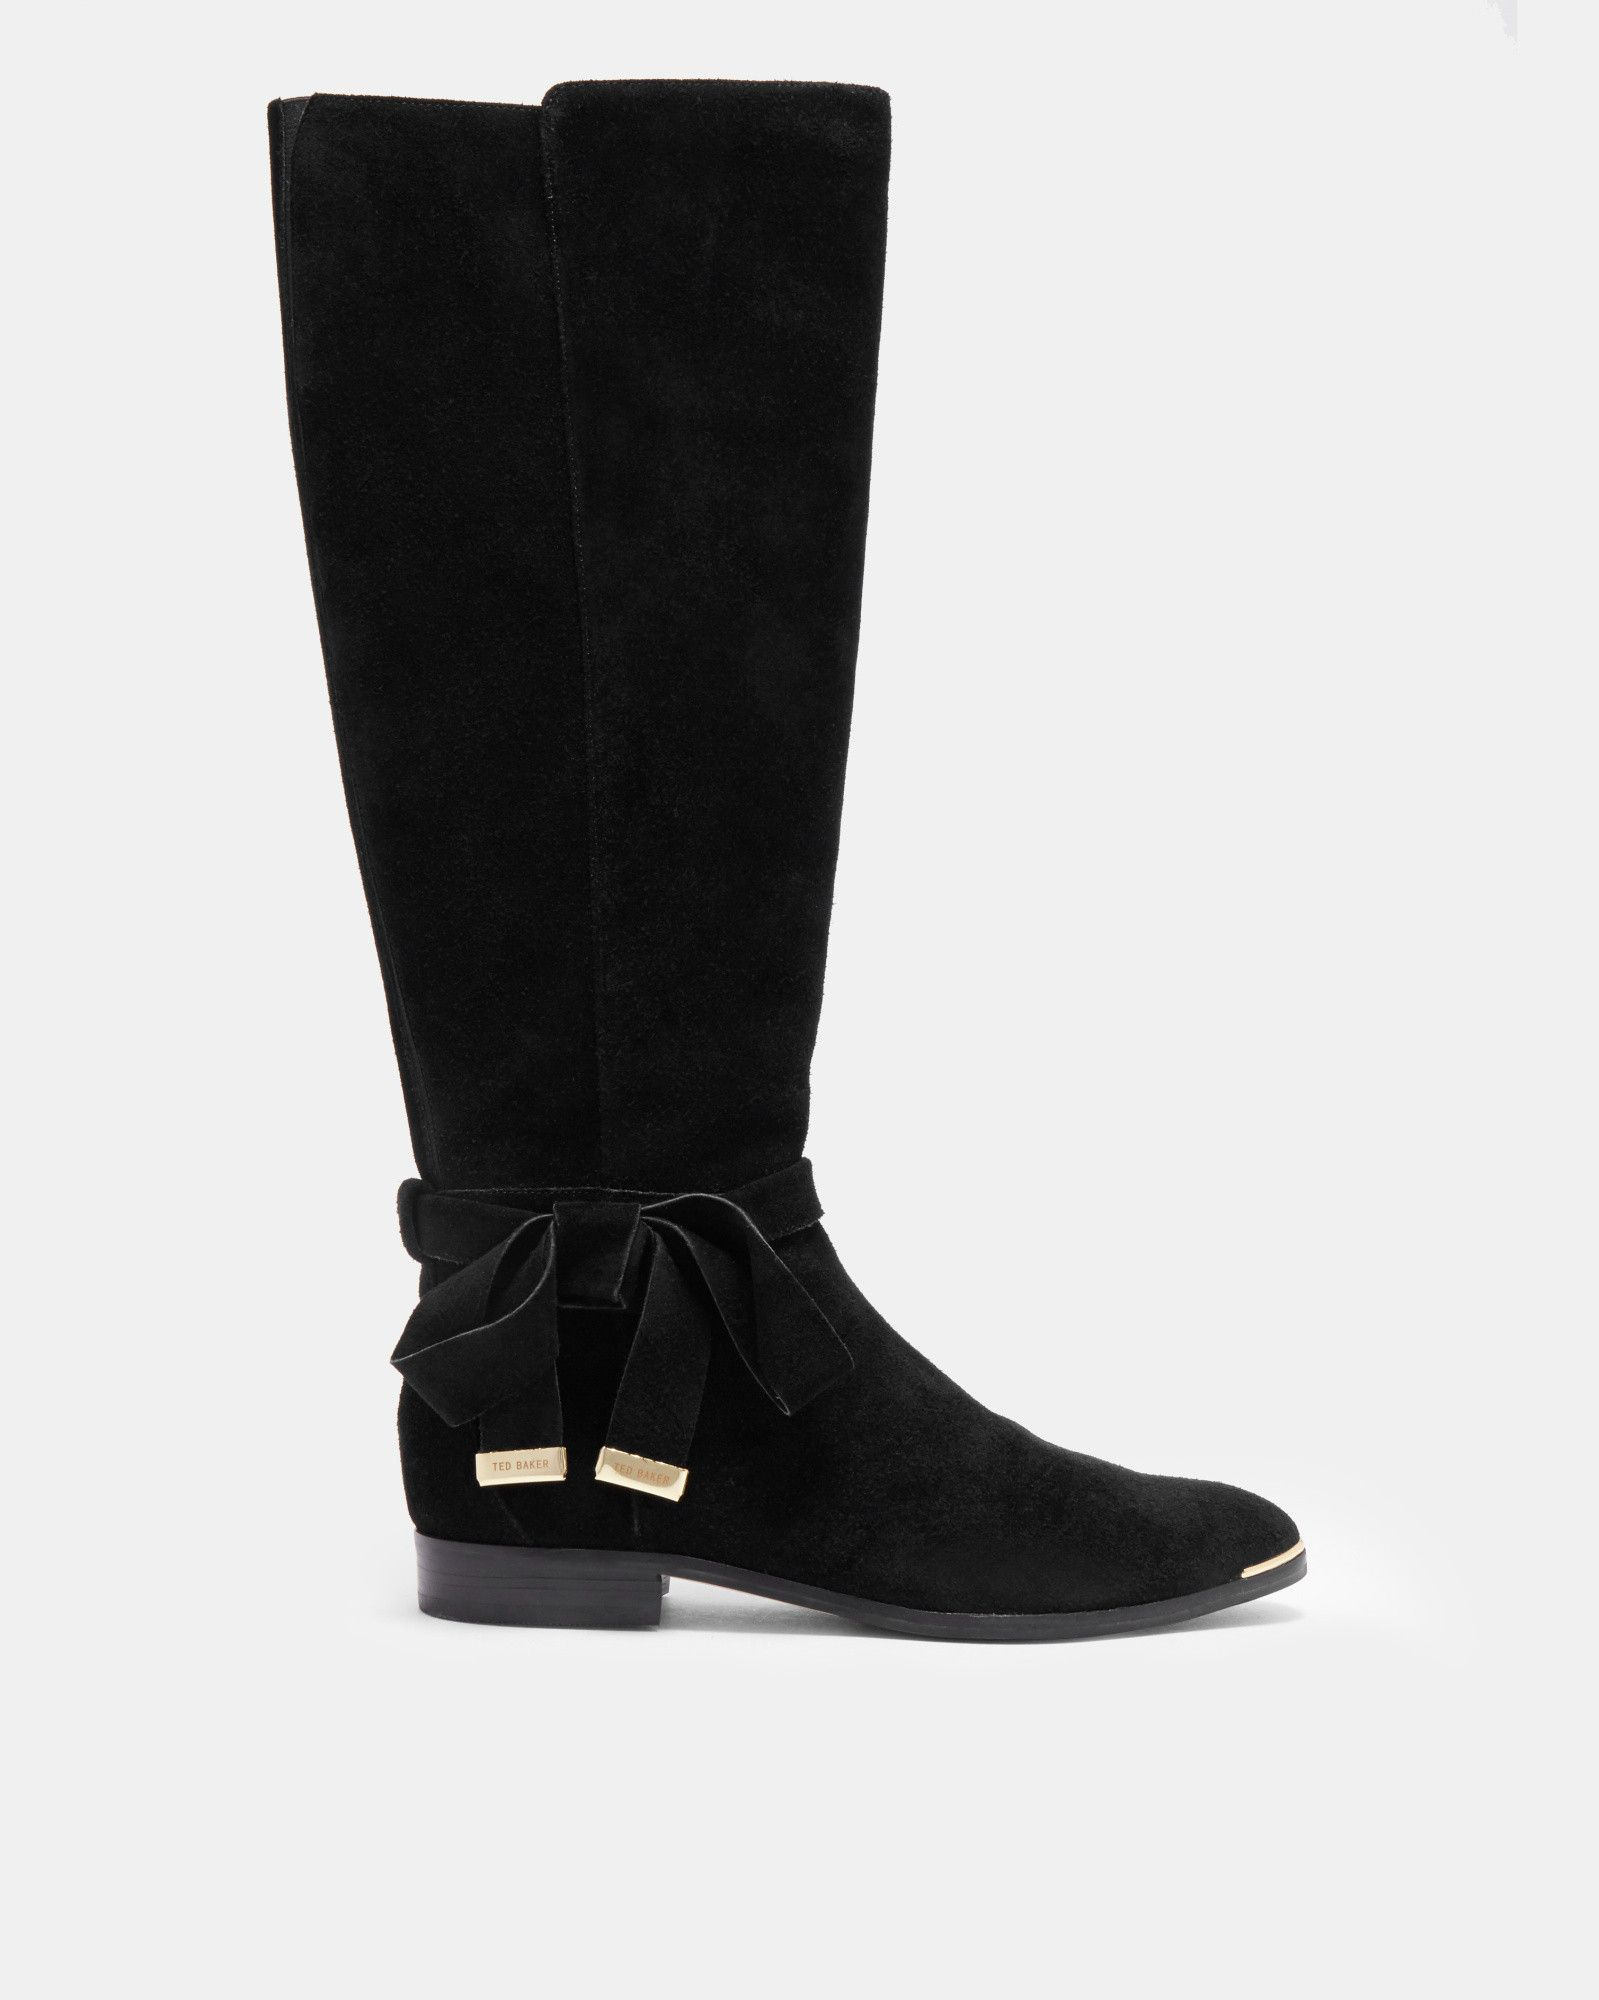 e61e68ede4d Ted Baker Suede knee high boots Black